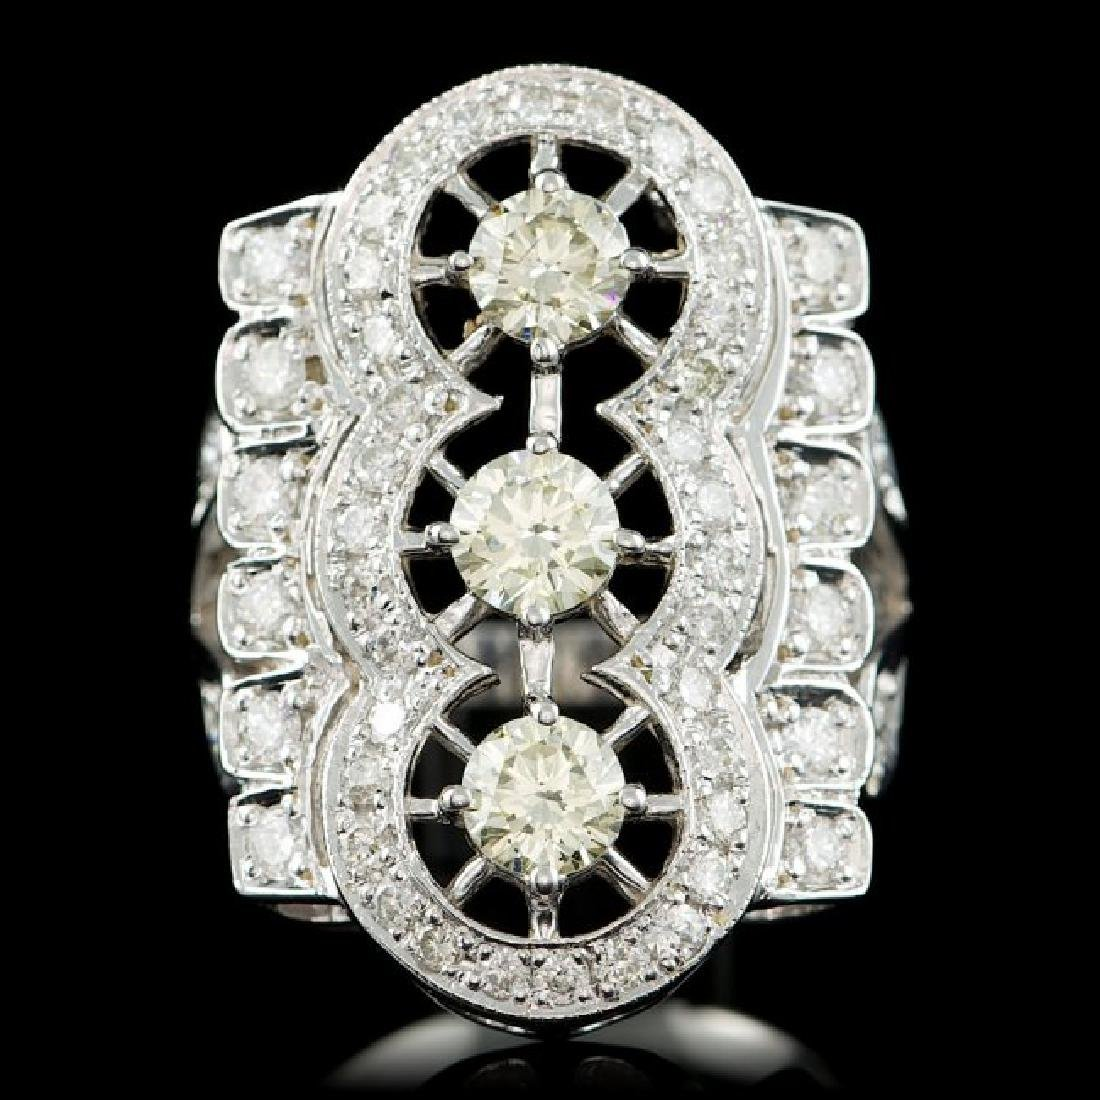 14k White Gold 2.7ct Diamond Ring